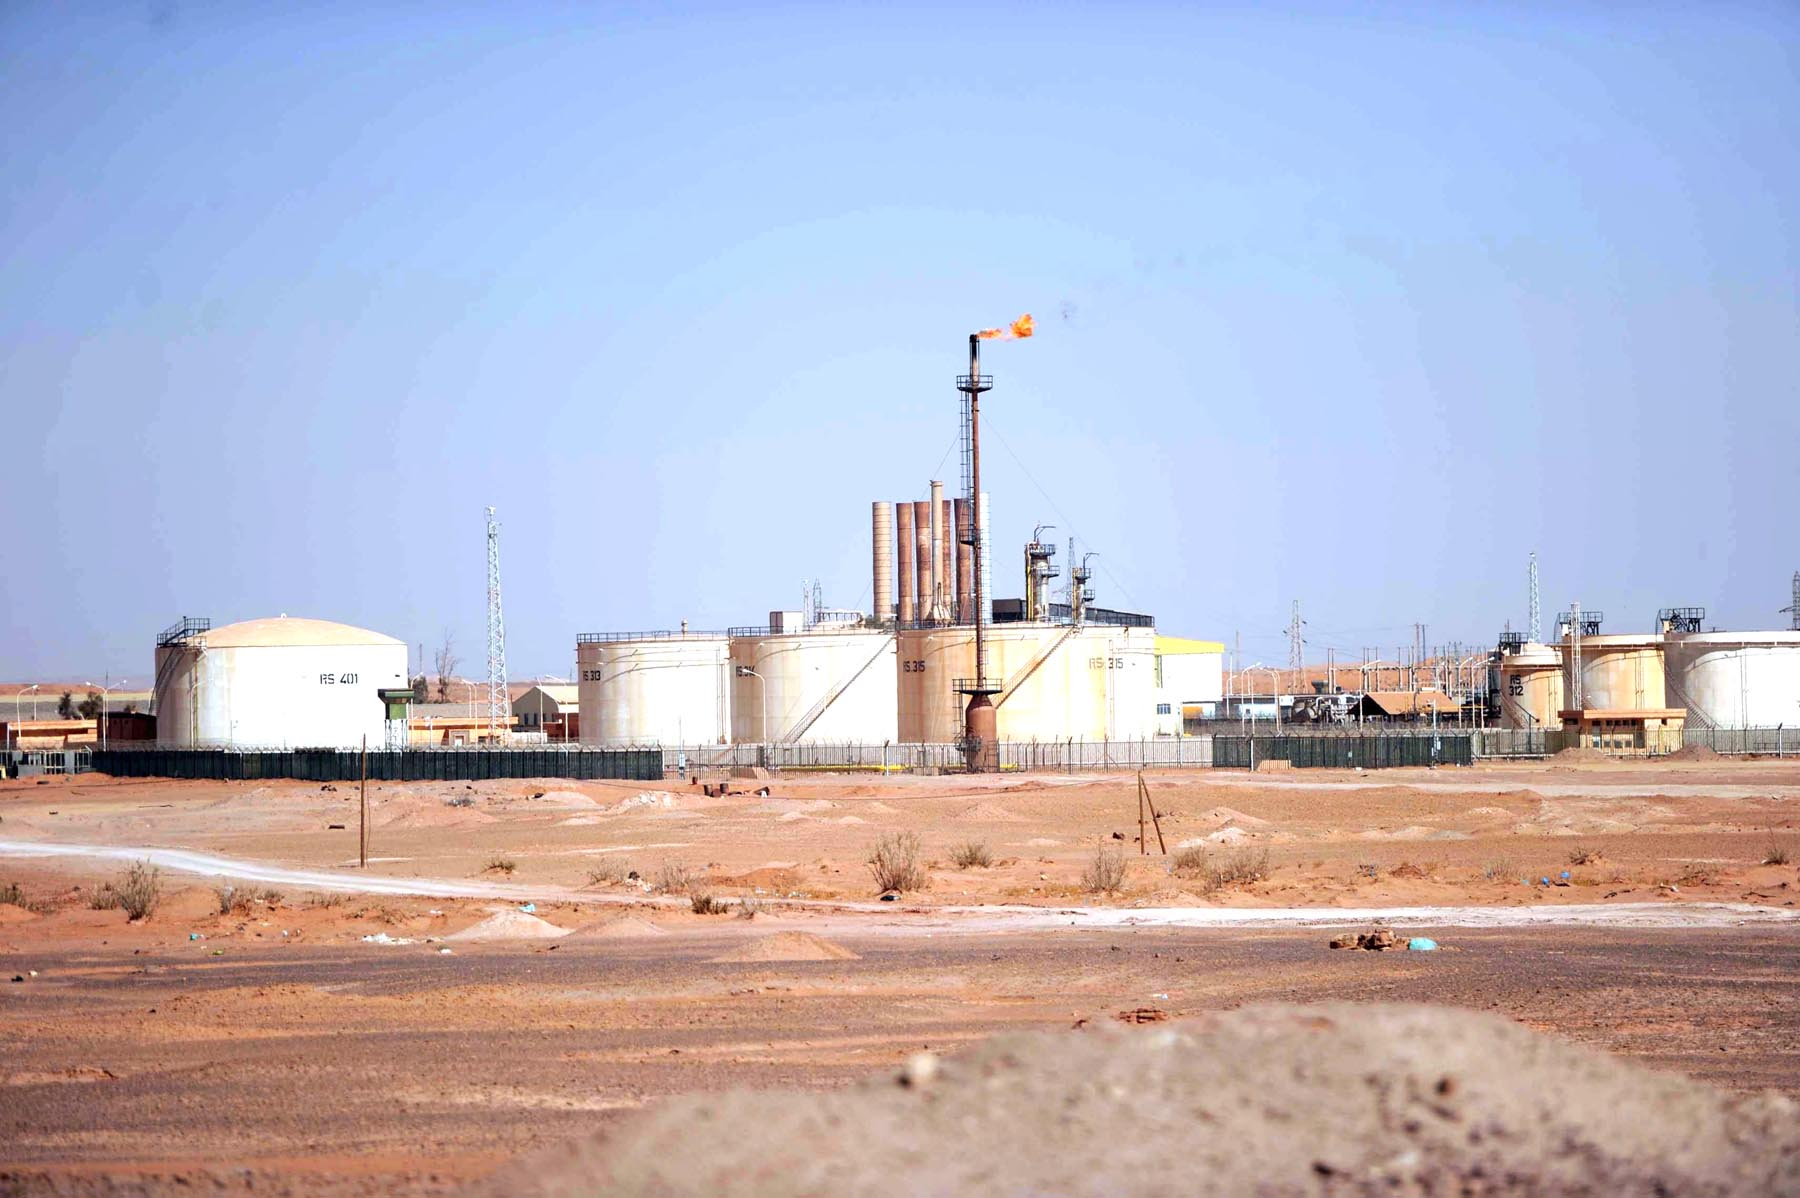 A general view of an Algerian oil installation on the outskirts of In Amenas. (AFP)